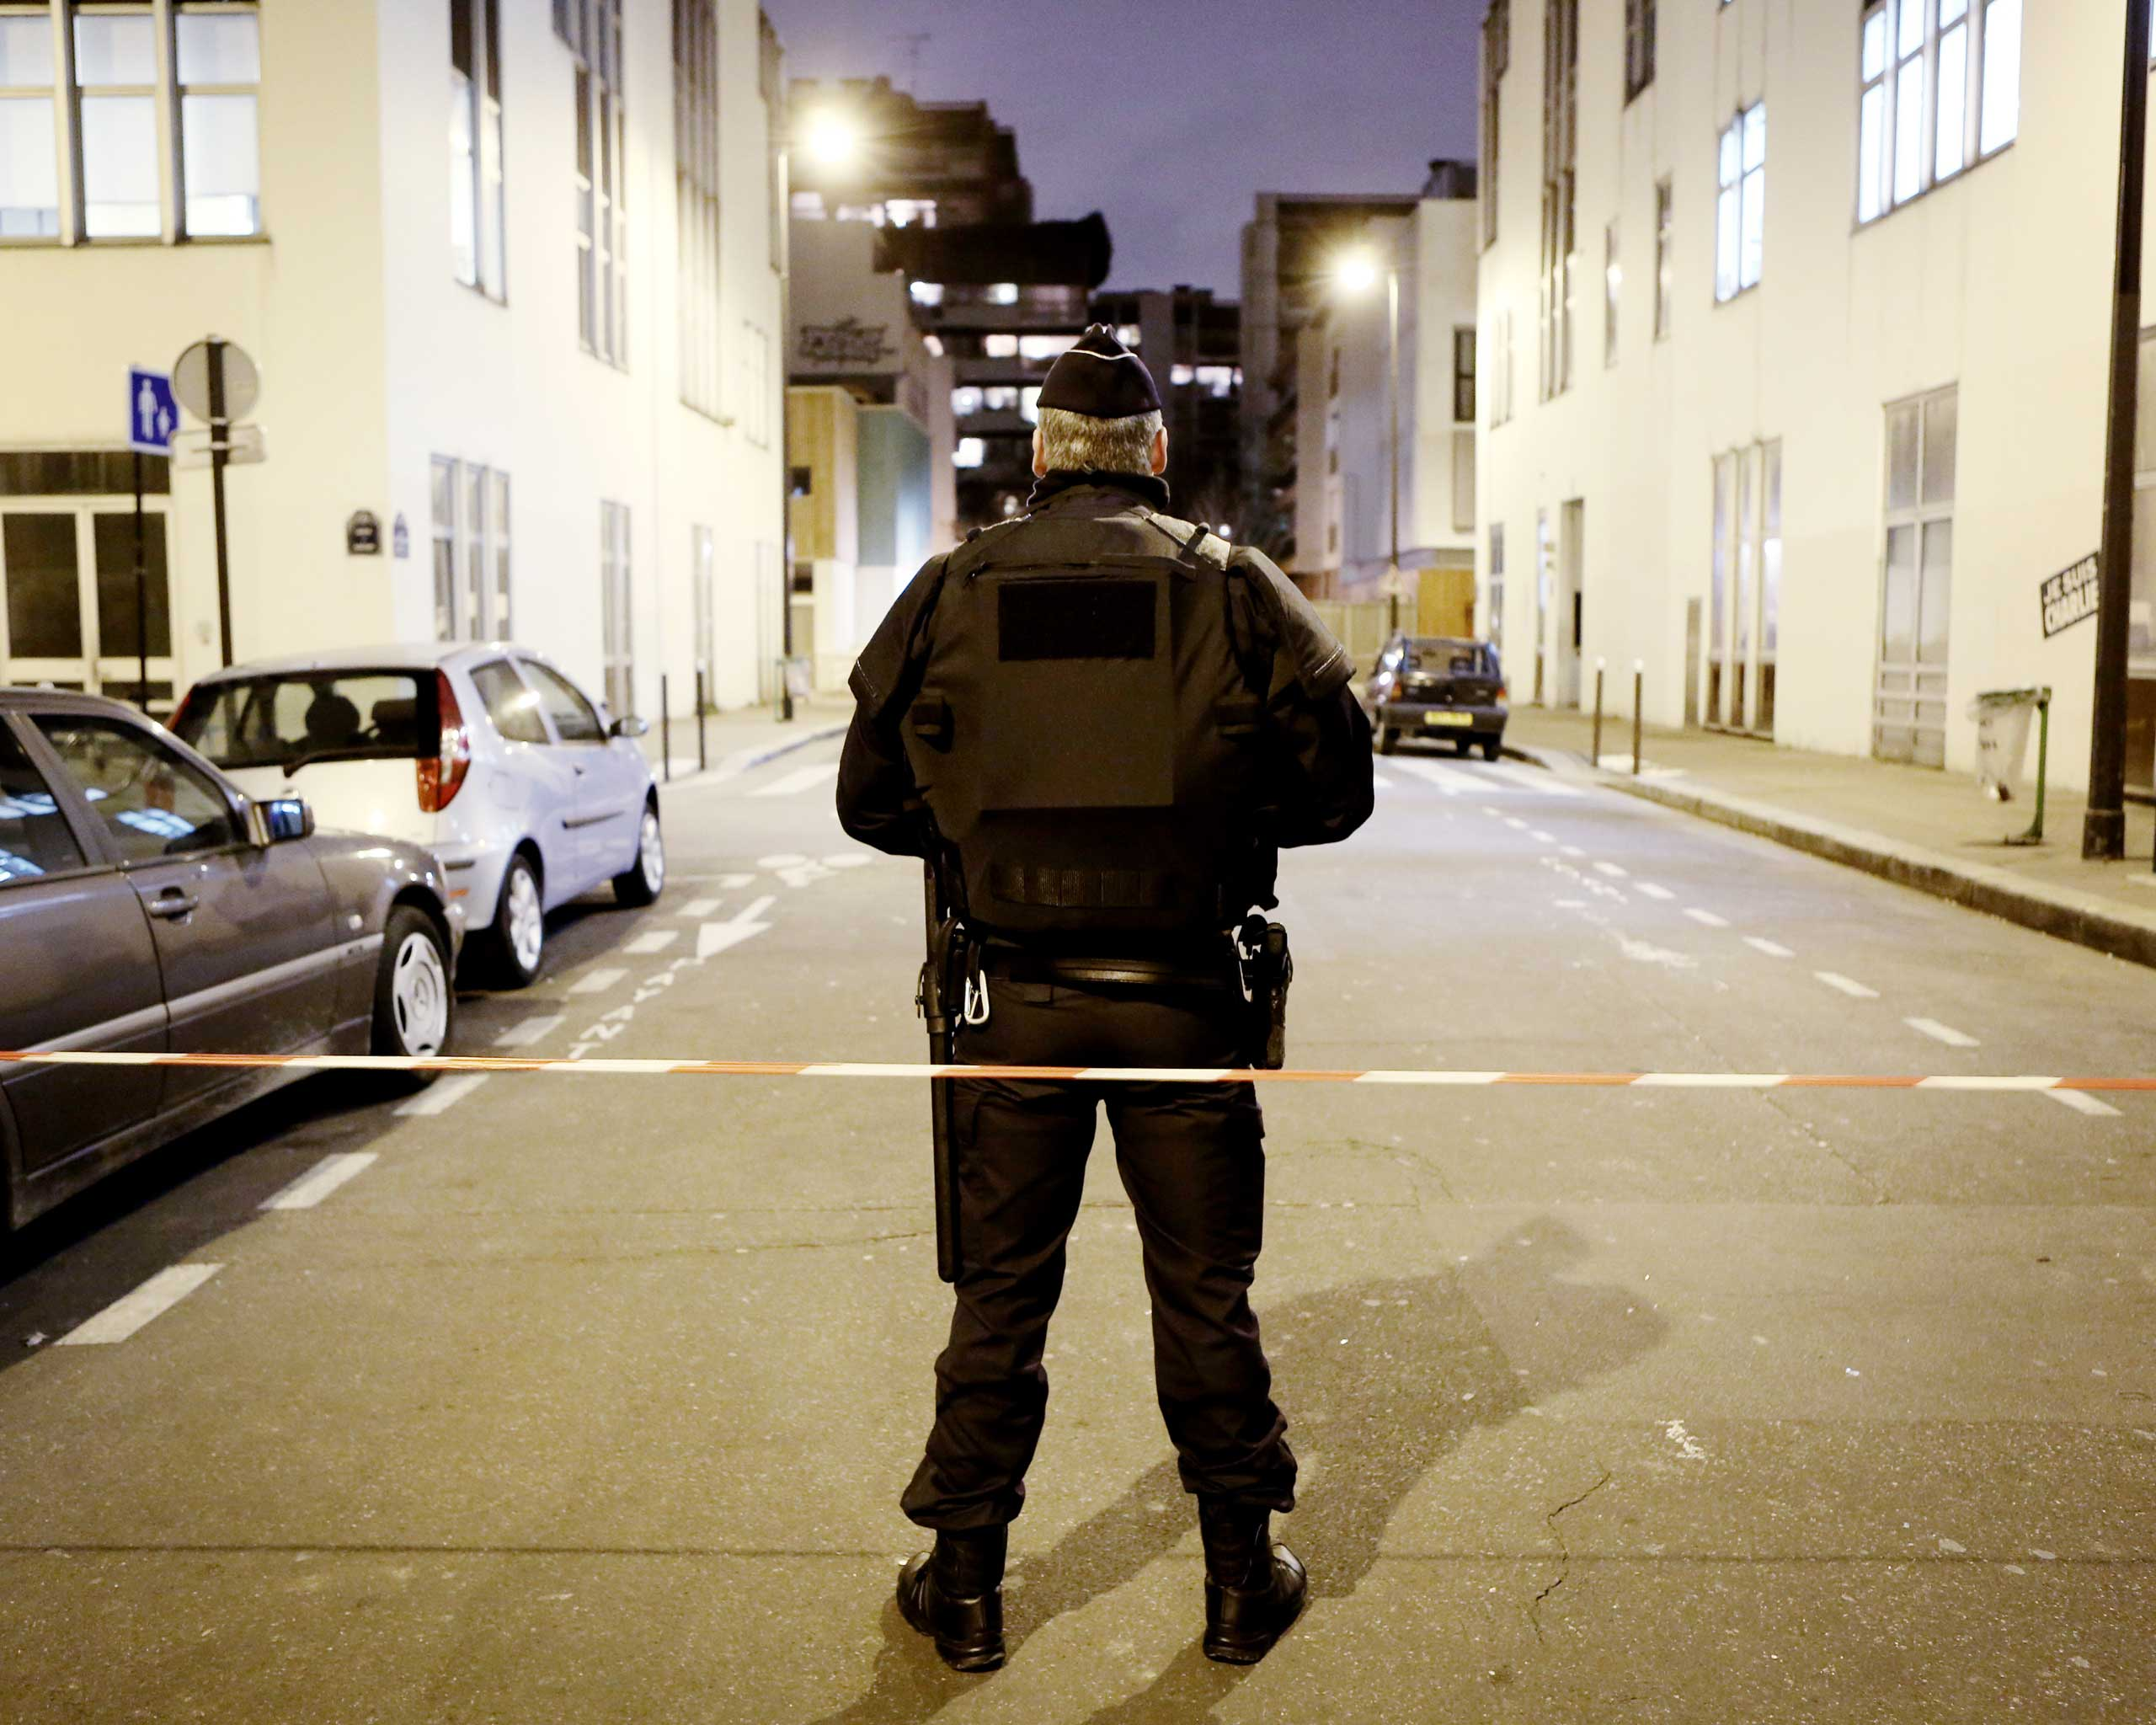 Police guard the area near the Charlie Hebdo offices, as Paris remains on alert after the killings, Jan. 12, 2015.